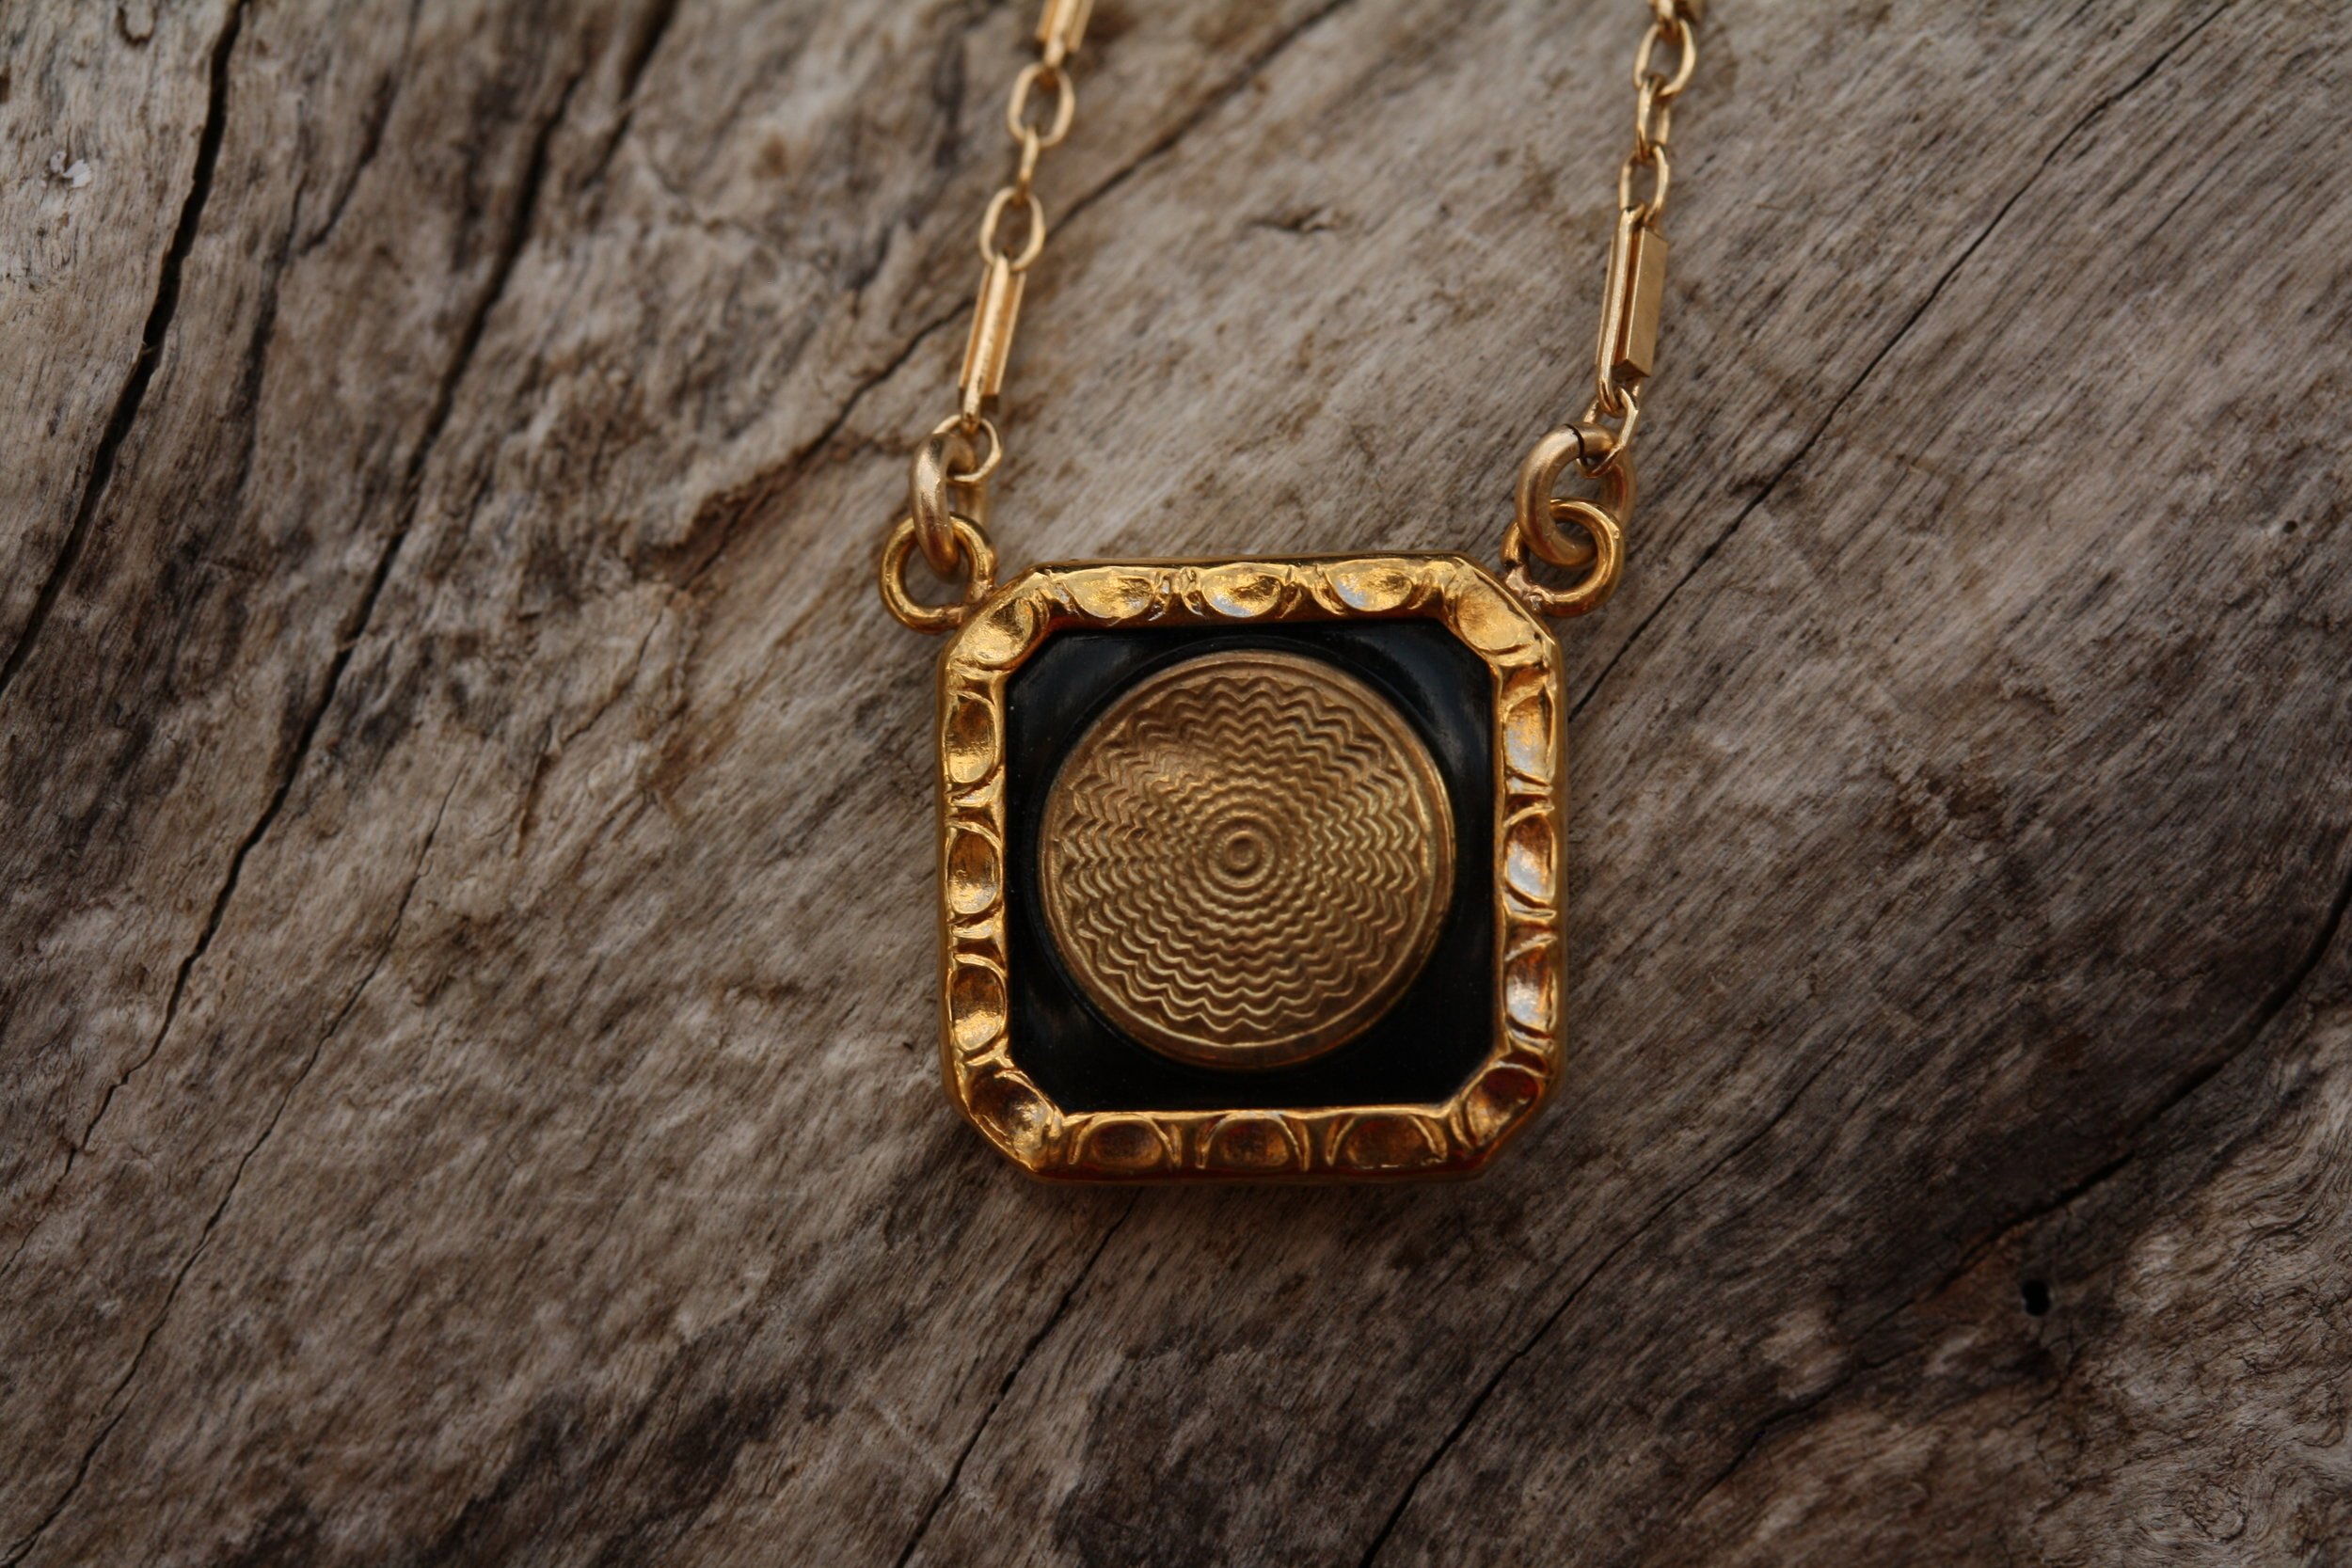 VCON Black and Gold Square Cufflink to Pendant Necklace_12 copy.JPG